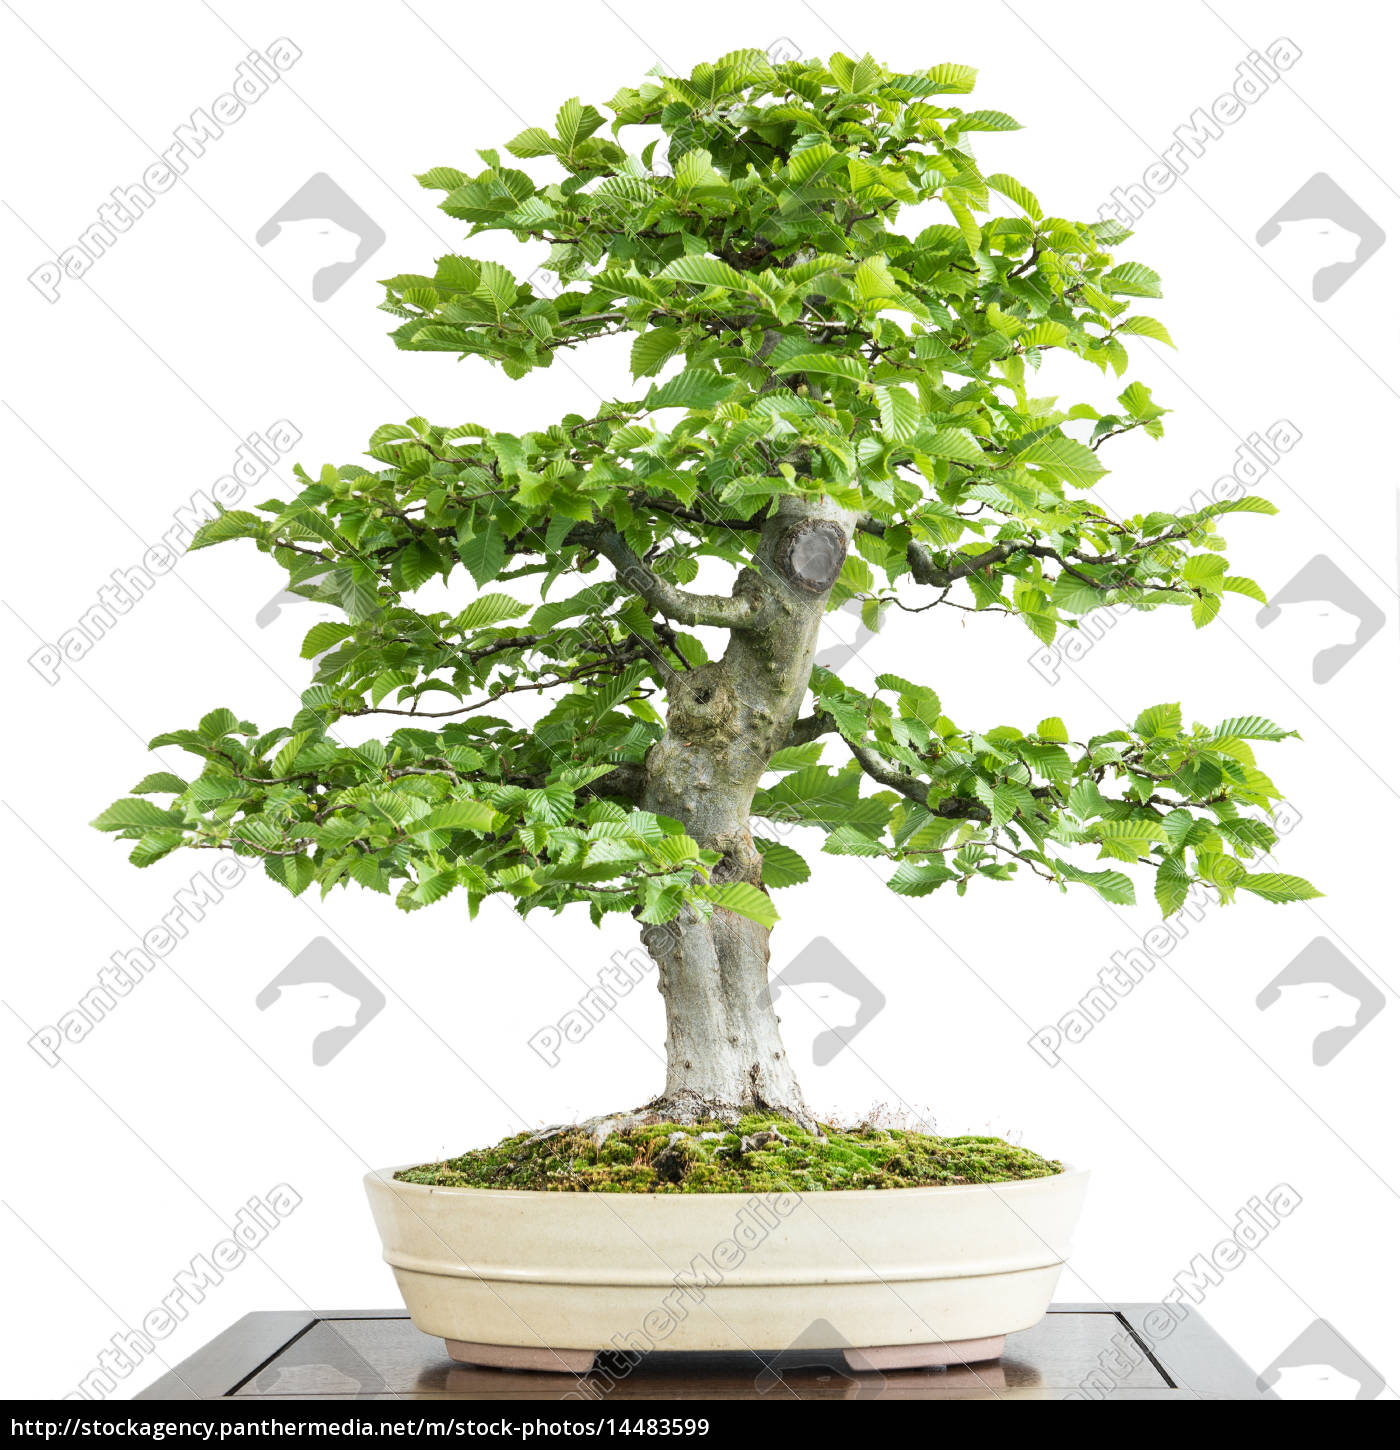 alte hainbuche als bonsai baum lizenzfreies bild 14483599 bildagentur panthermedia. Black Bedroom Furniture Sets. Home Design Ideas